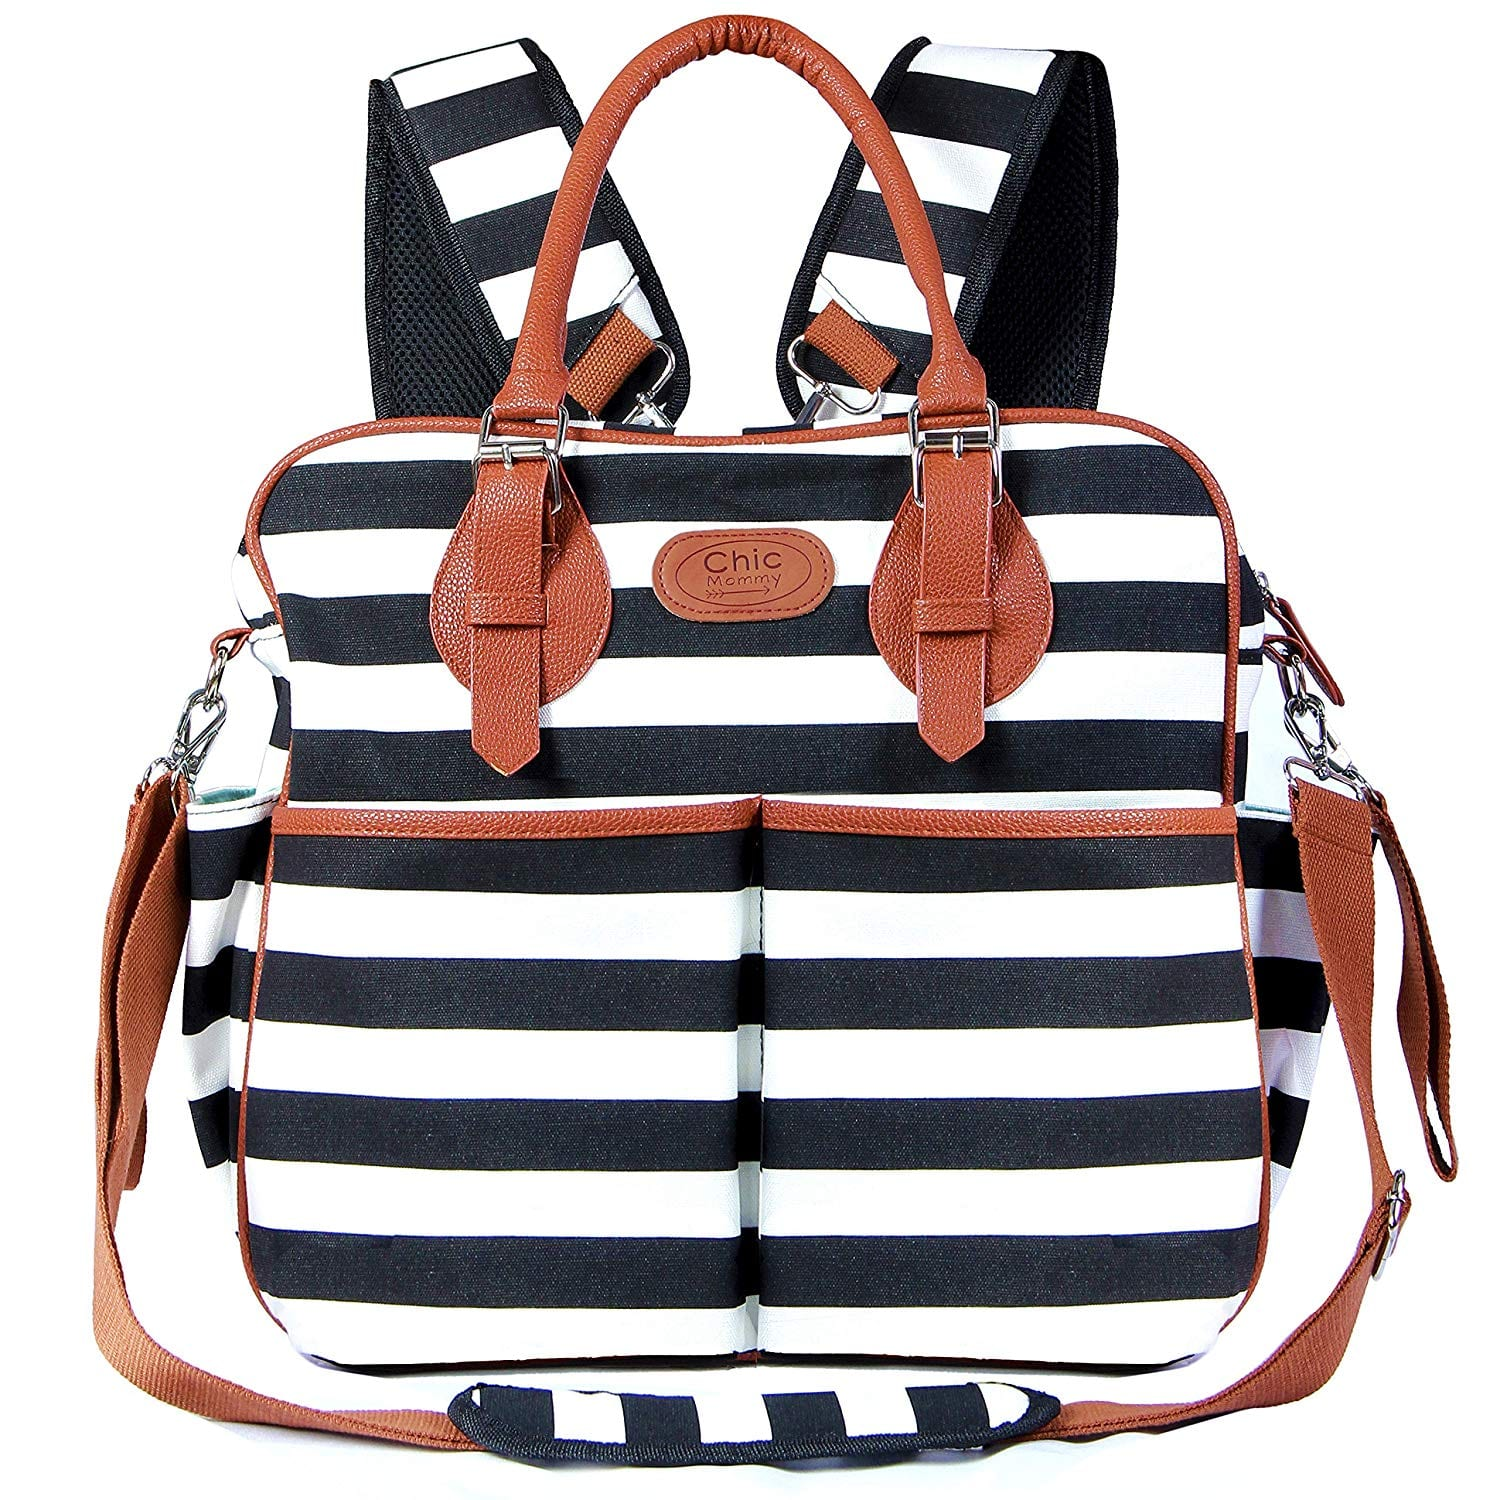 Chic Mommy Carry-On Shoulder Luggage for Women